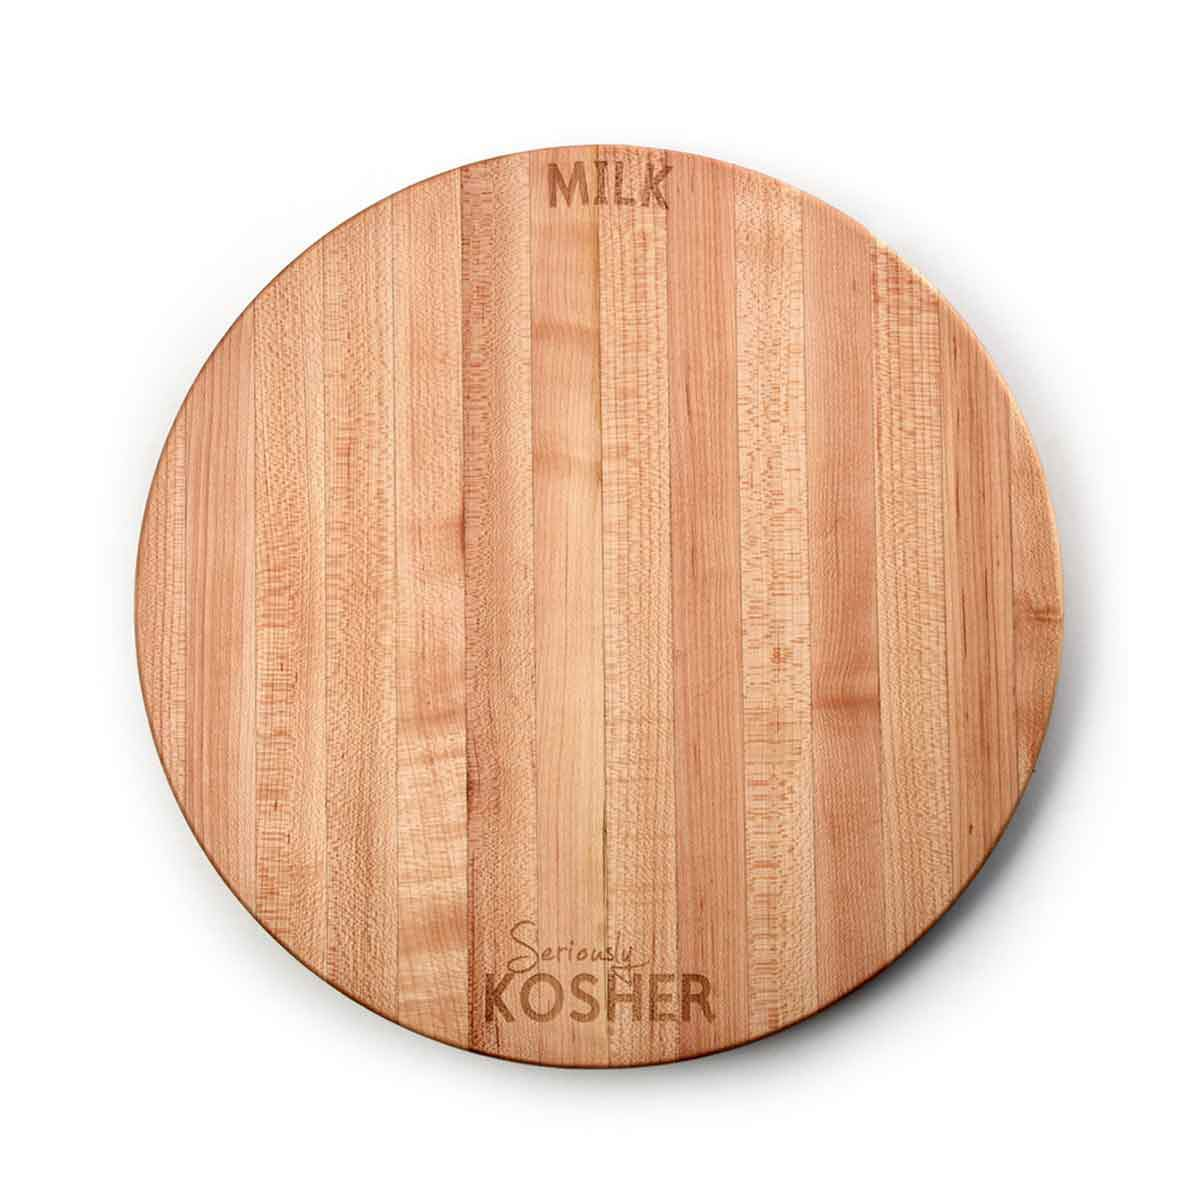 Seriously Kosher ~ Round Cutting Board ~ Milk